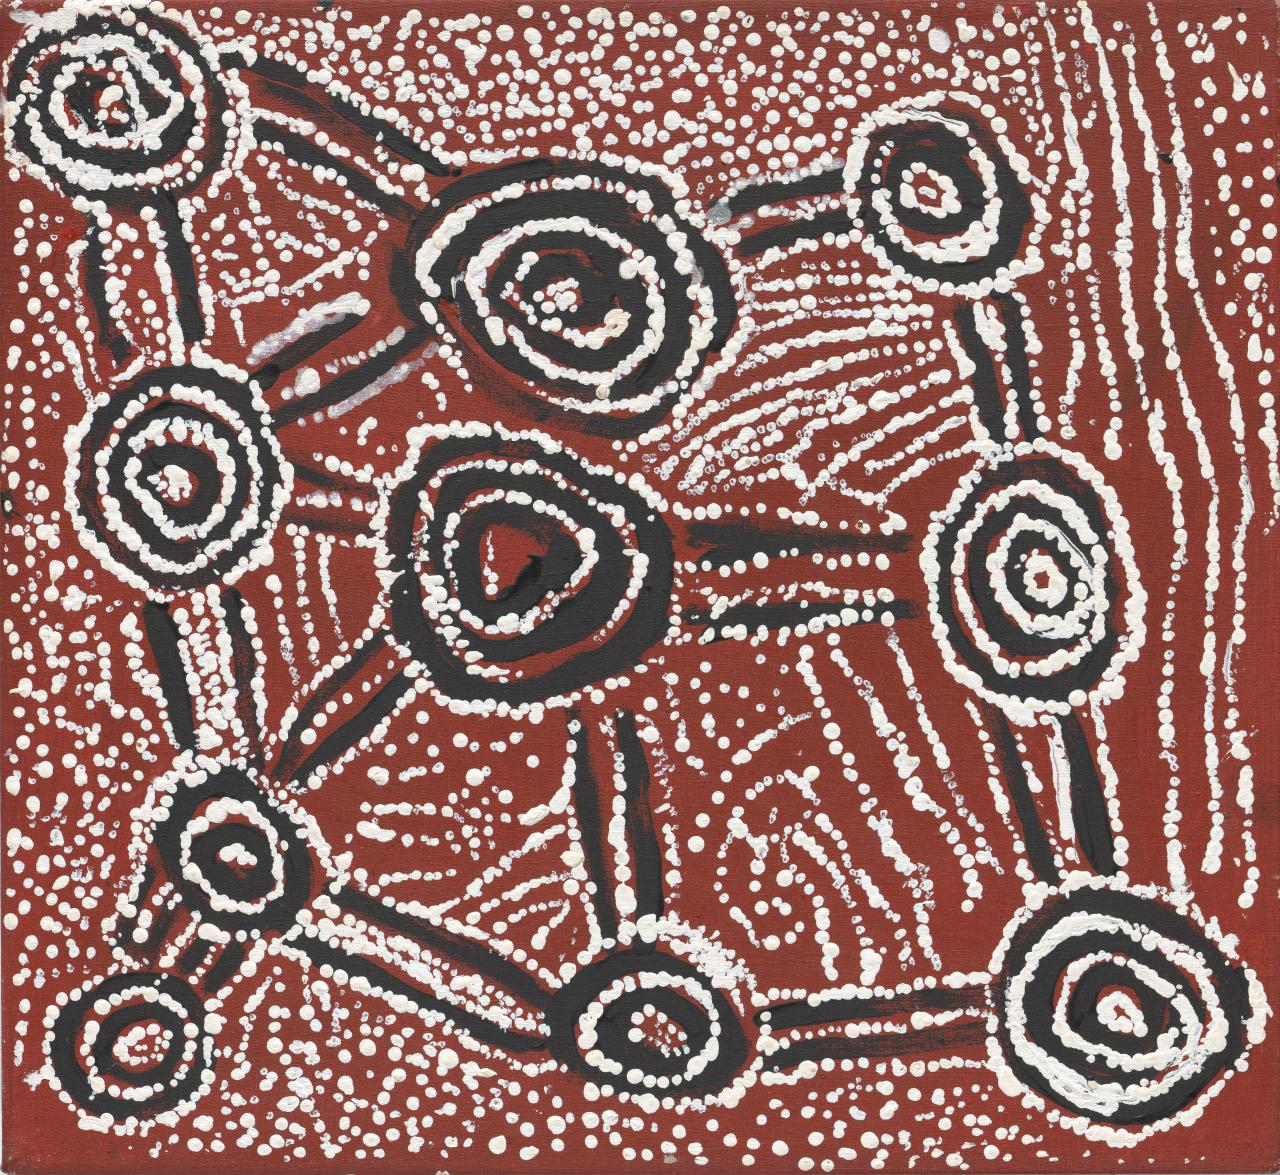 Untitled (Tingarri designs associated with Tarkulnga)